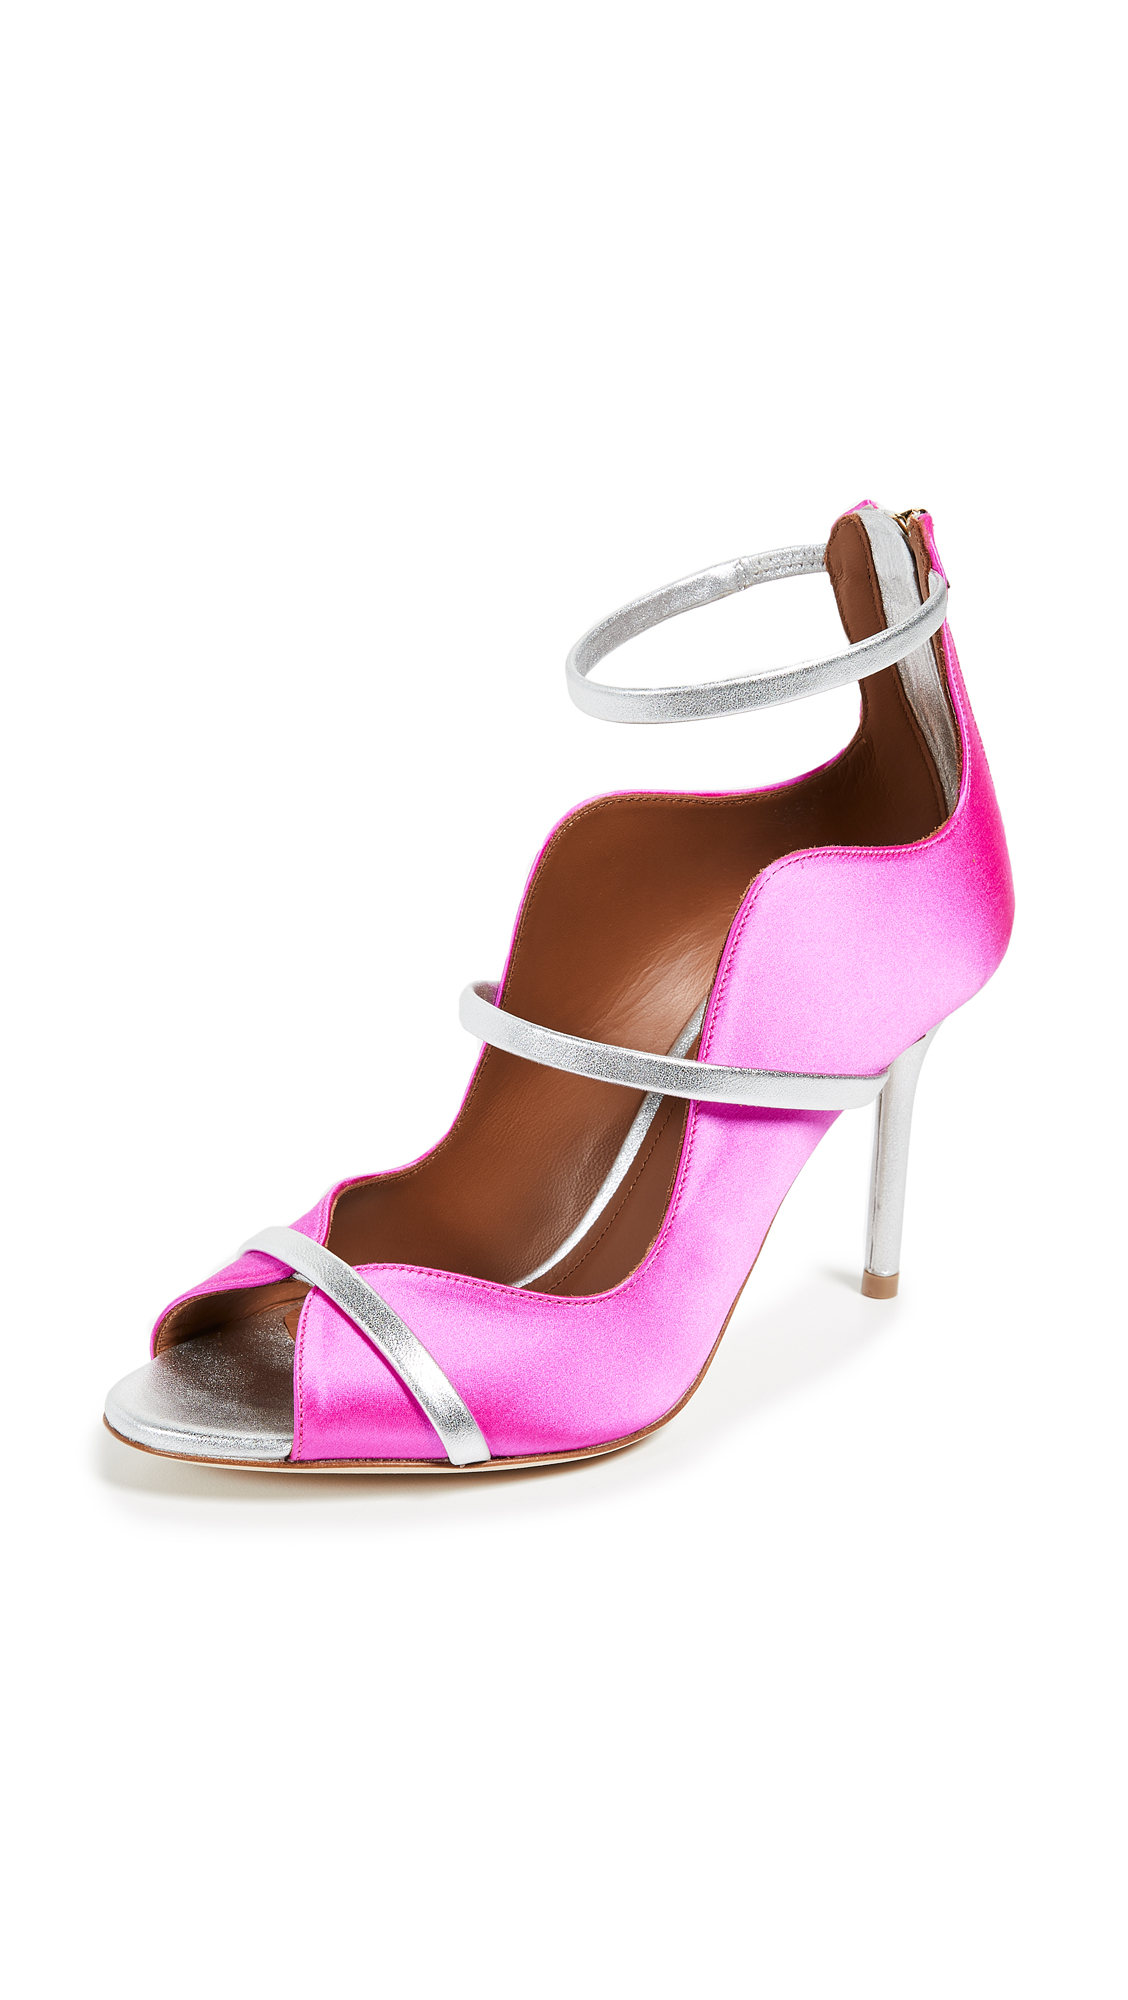 Malone Souliers by Roy Luwolt Mika Pumps - Fuchsia/Silver